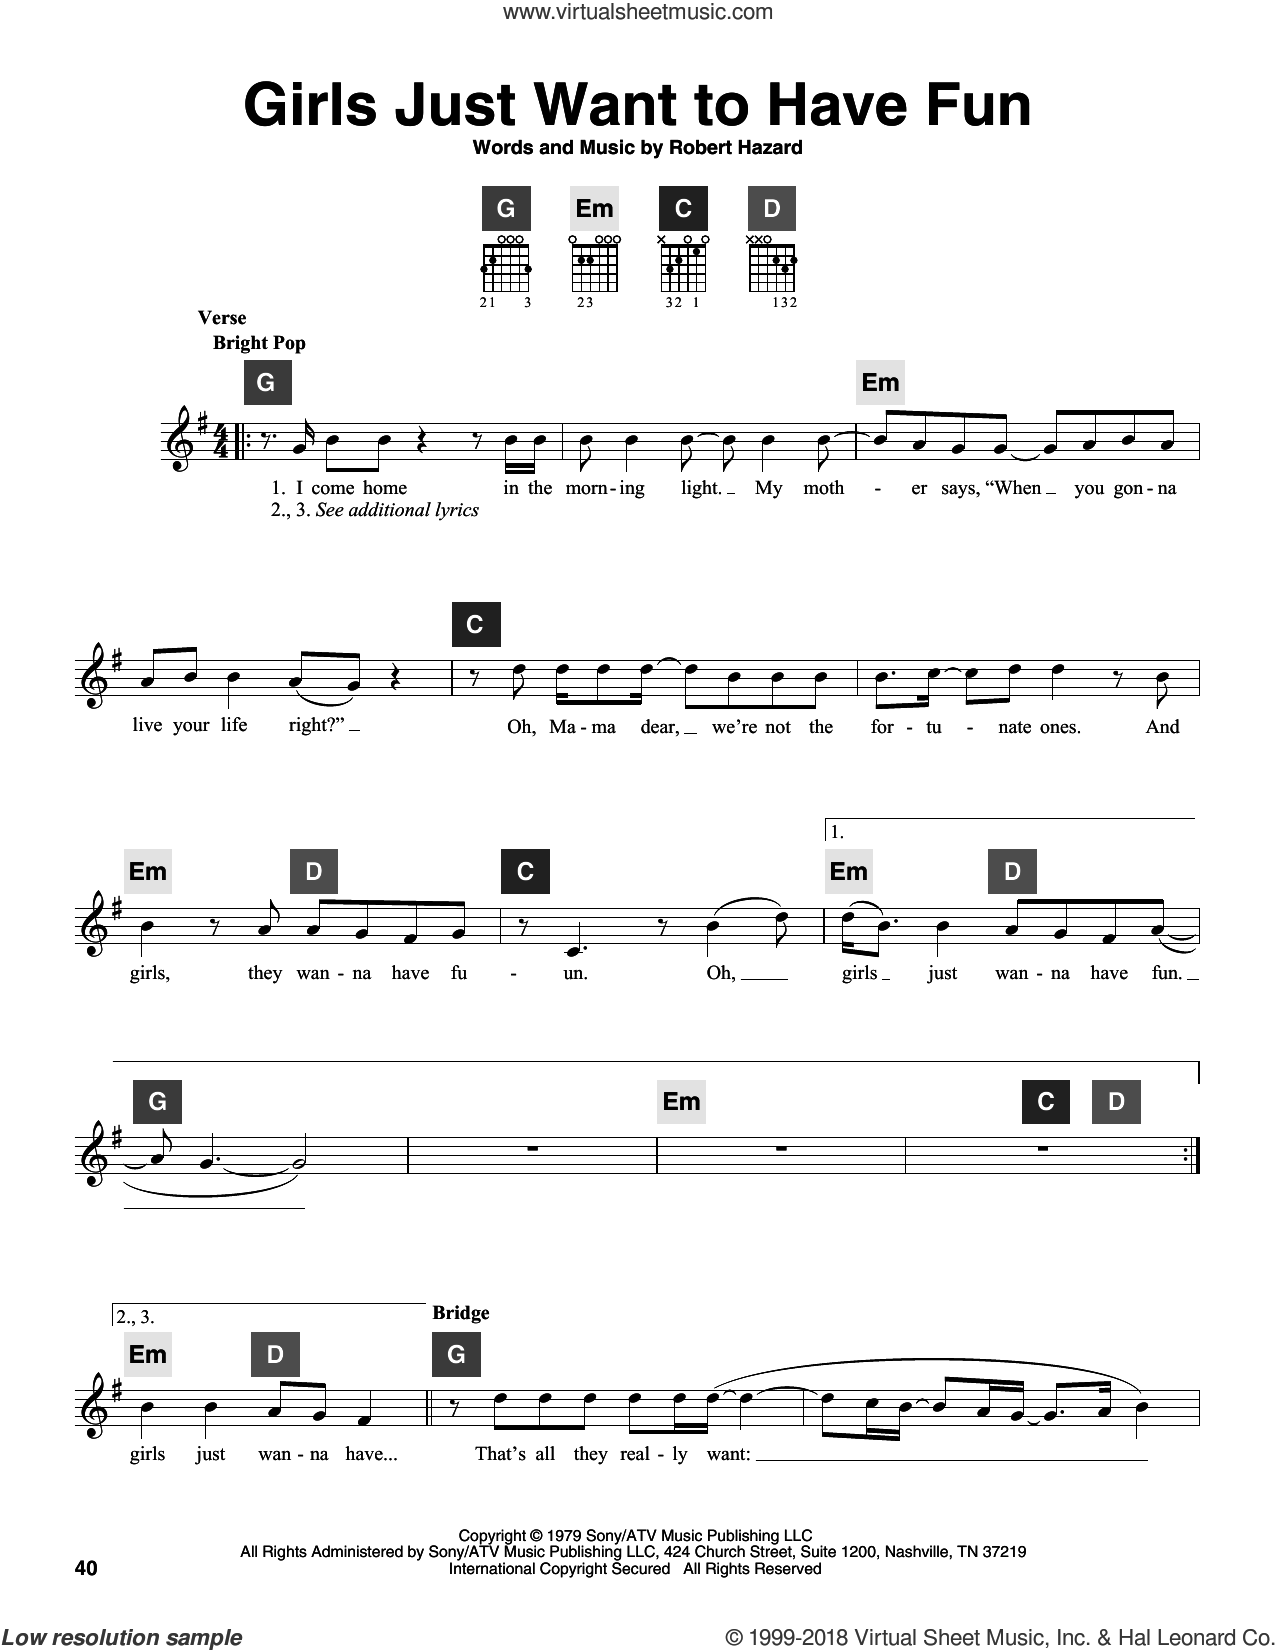 Lauper - Girls Just Want To Have Fun sheet music (intermediate) for ...